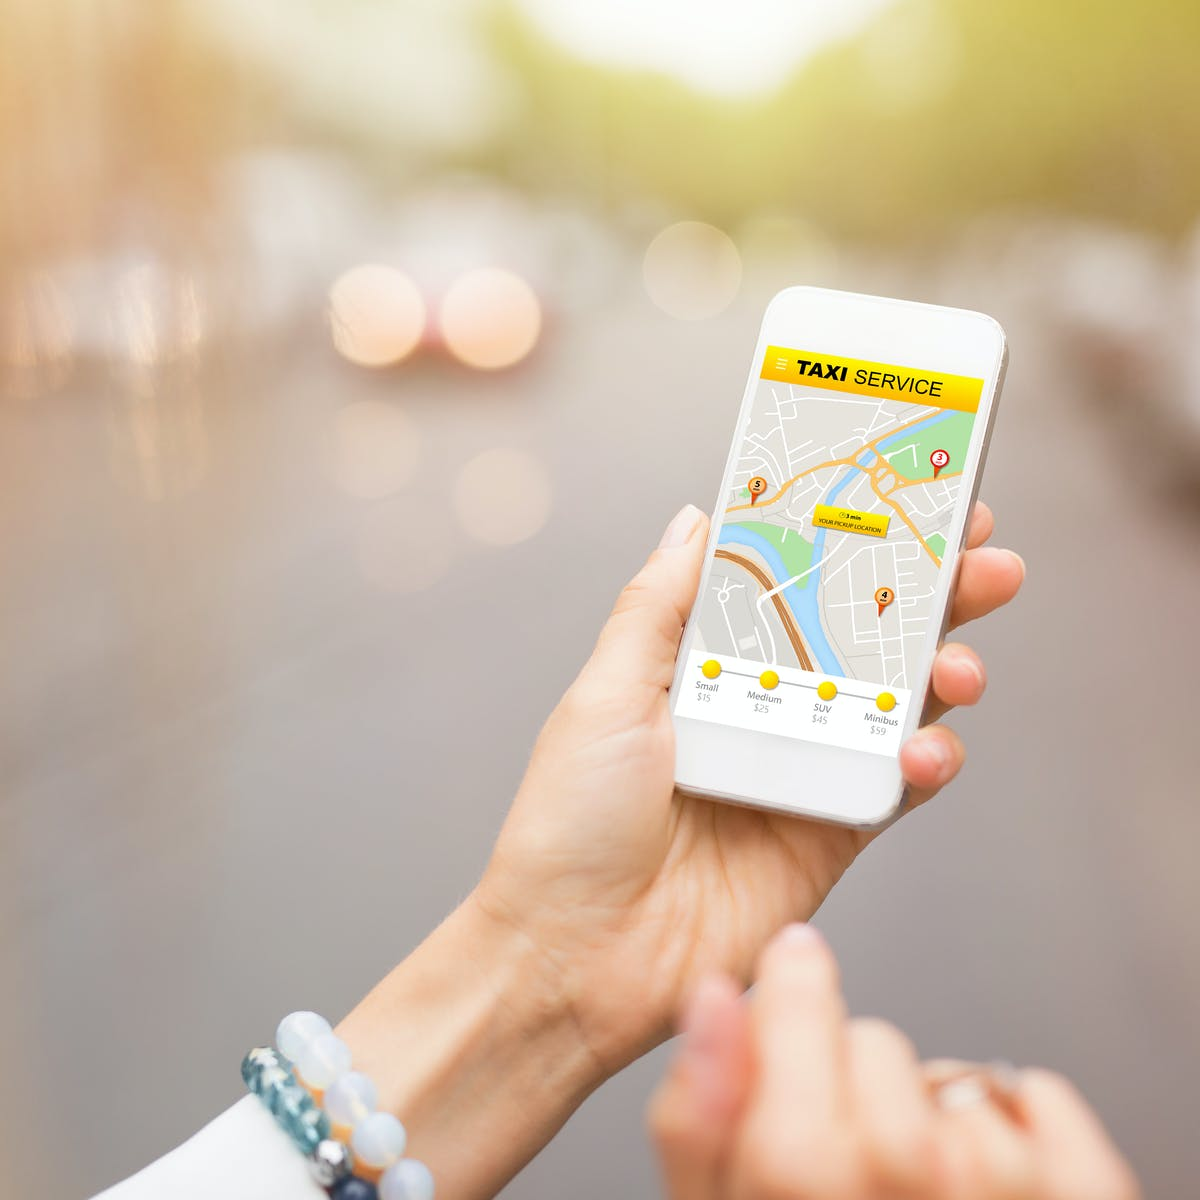 As yet another ridesharing platform launches in Australia